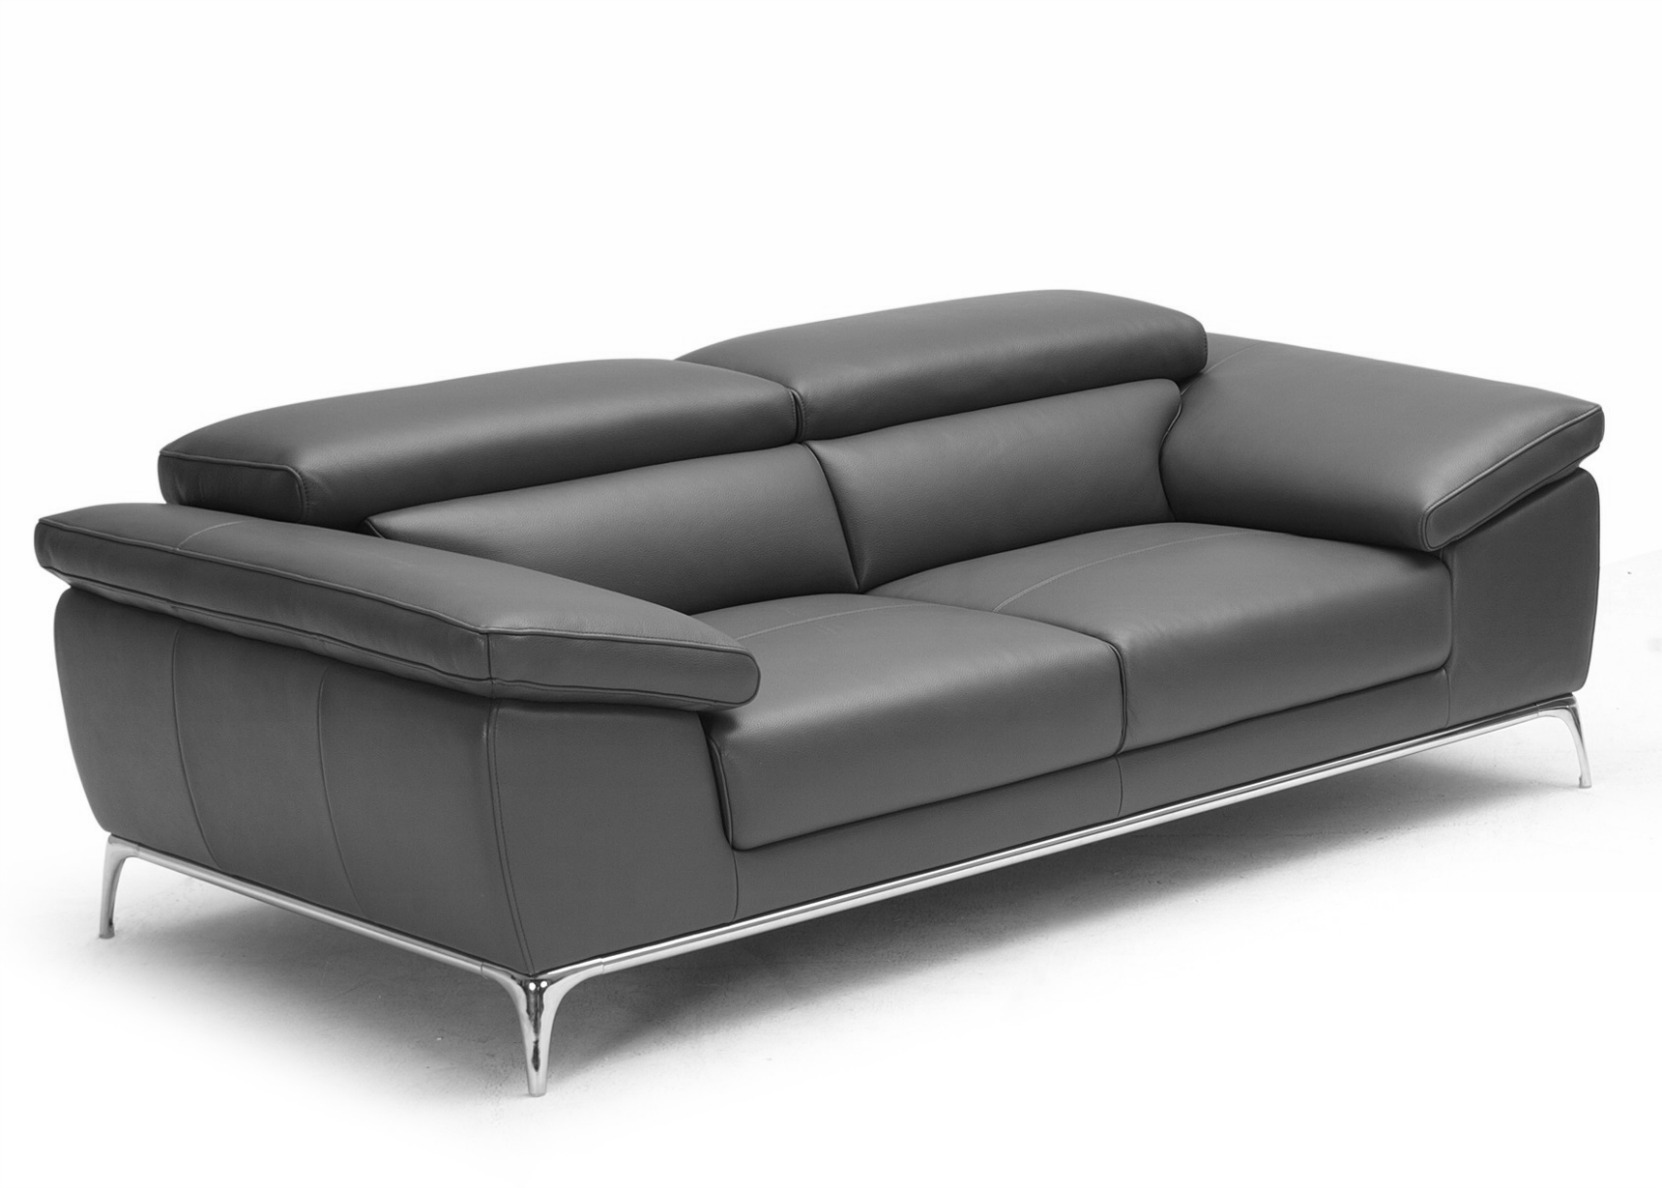 Ebony Sofa With Adjustable Headrest Not Just Brown